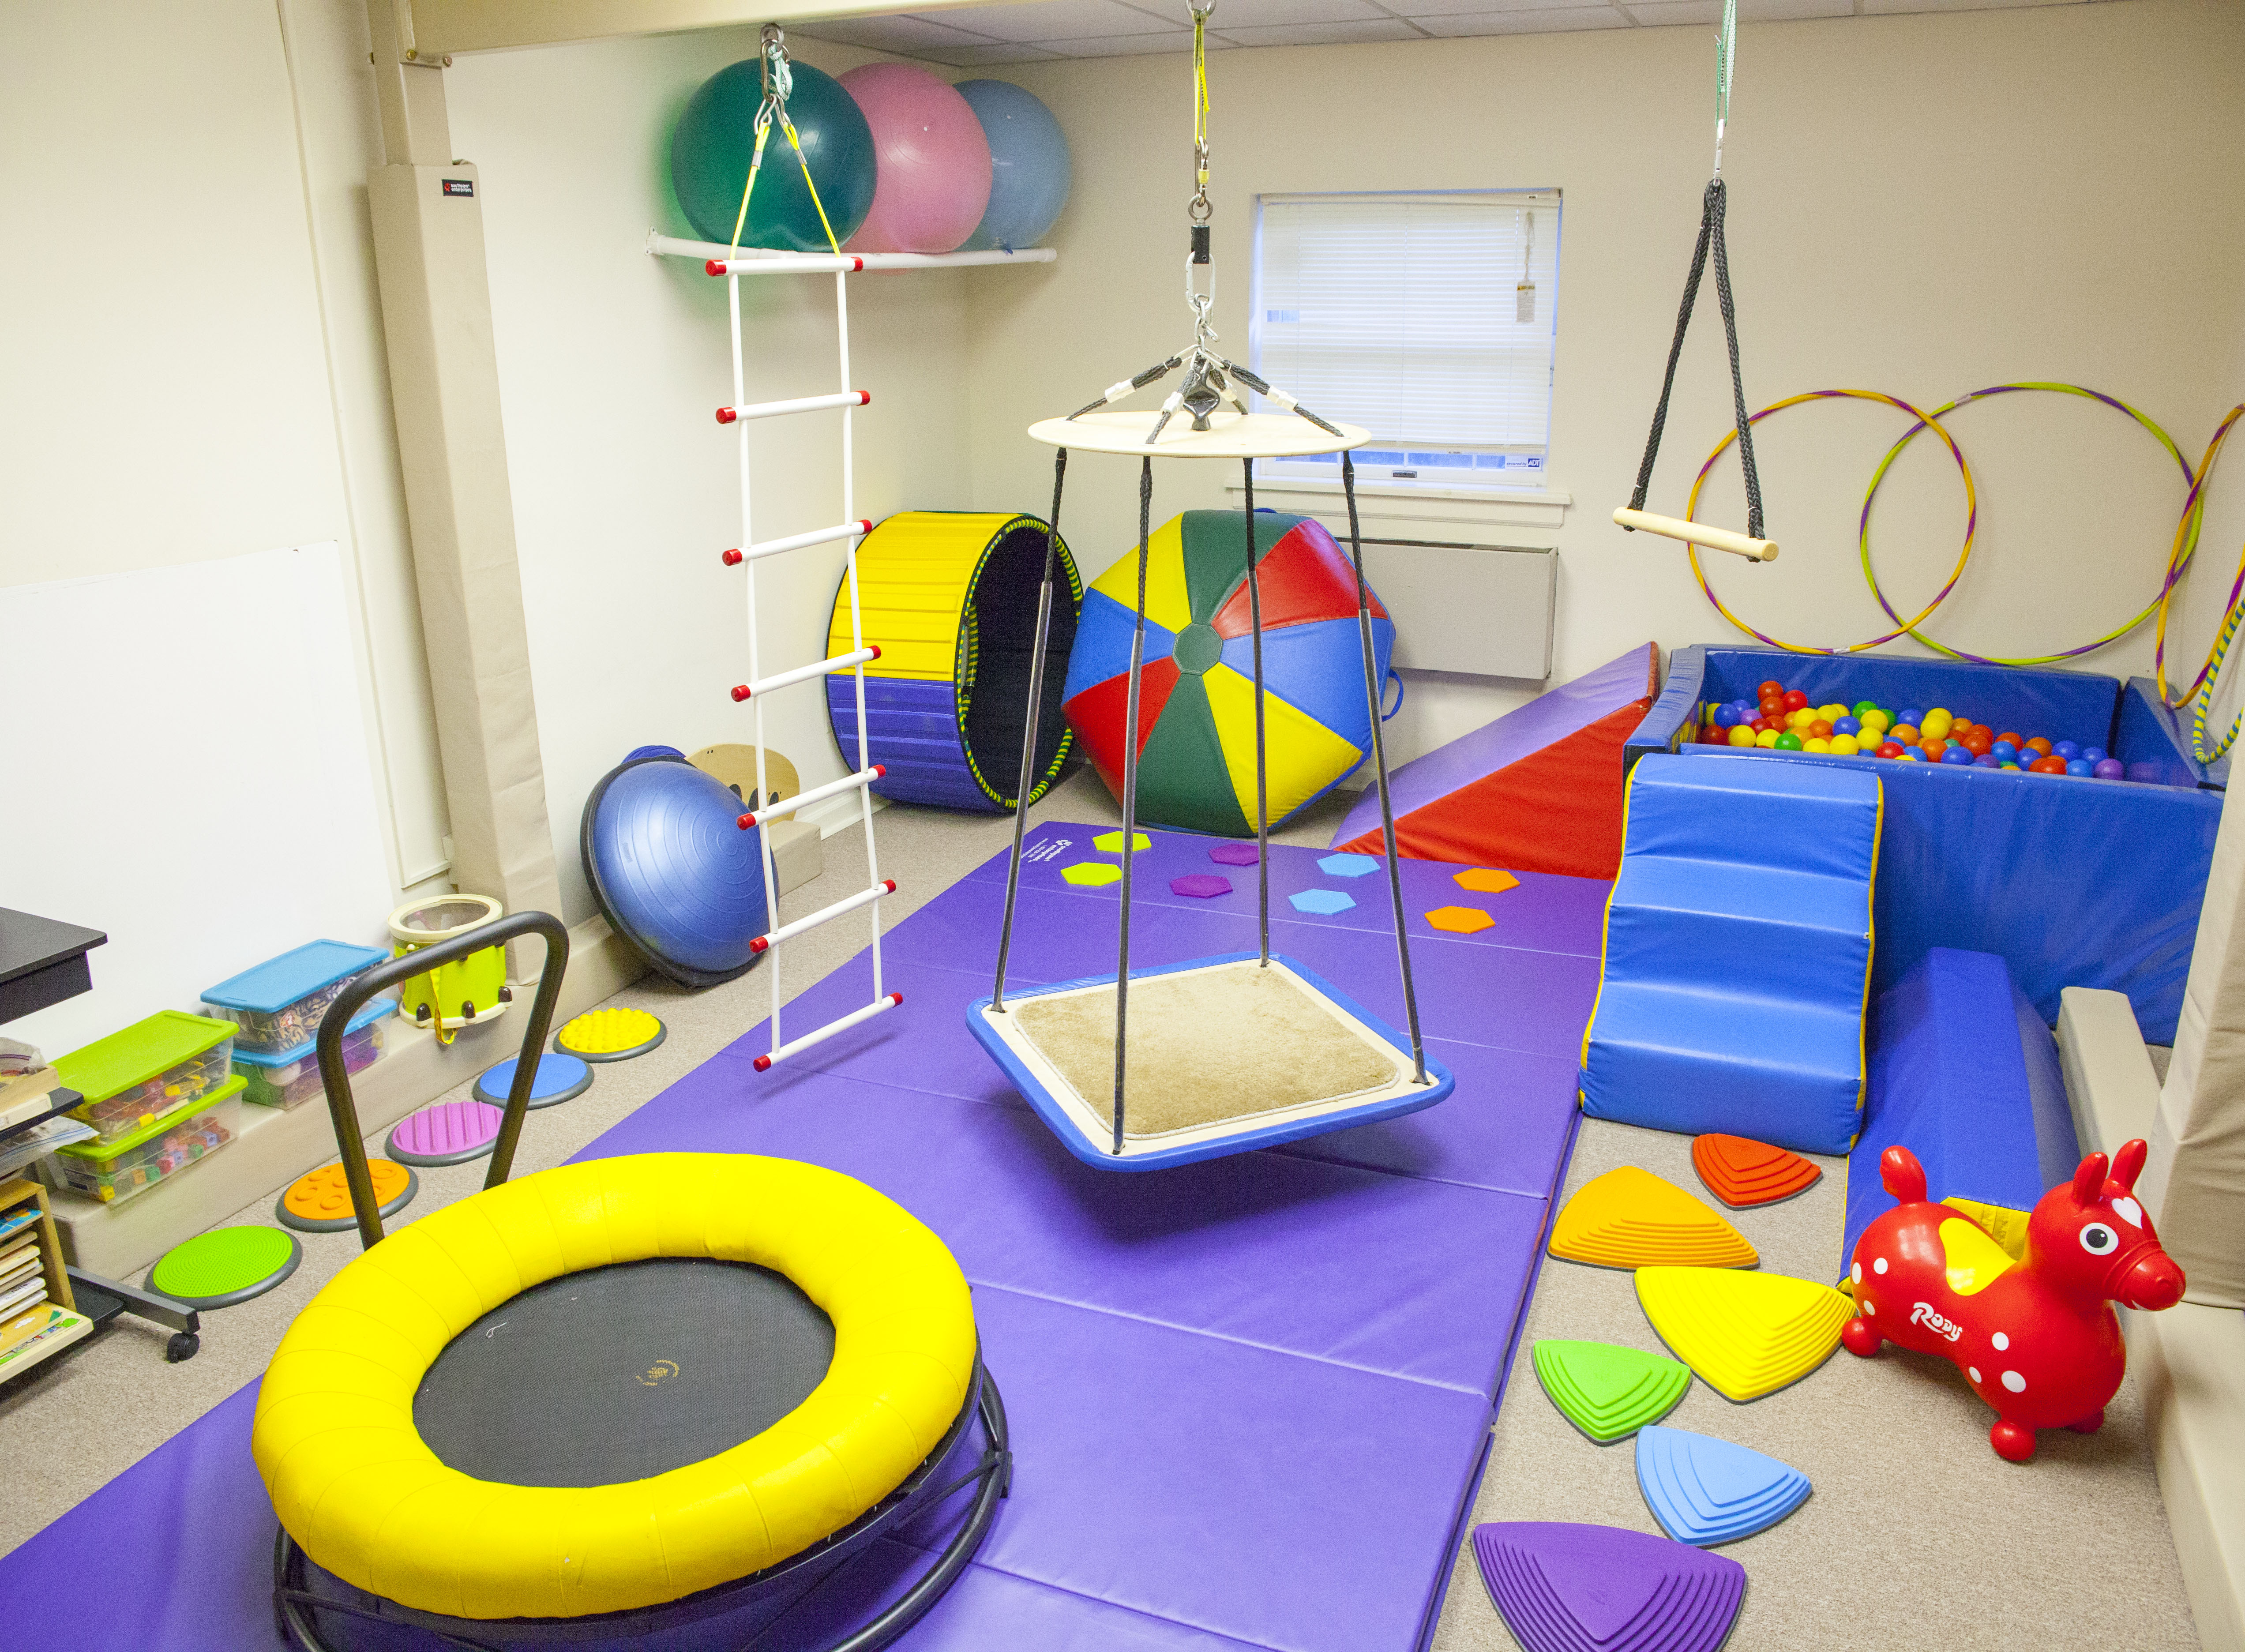 Abilities therapy network occupational therapy for The family room psychological services